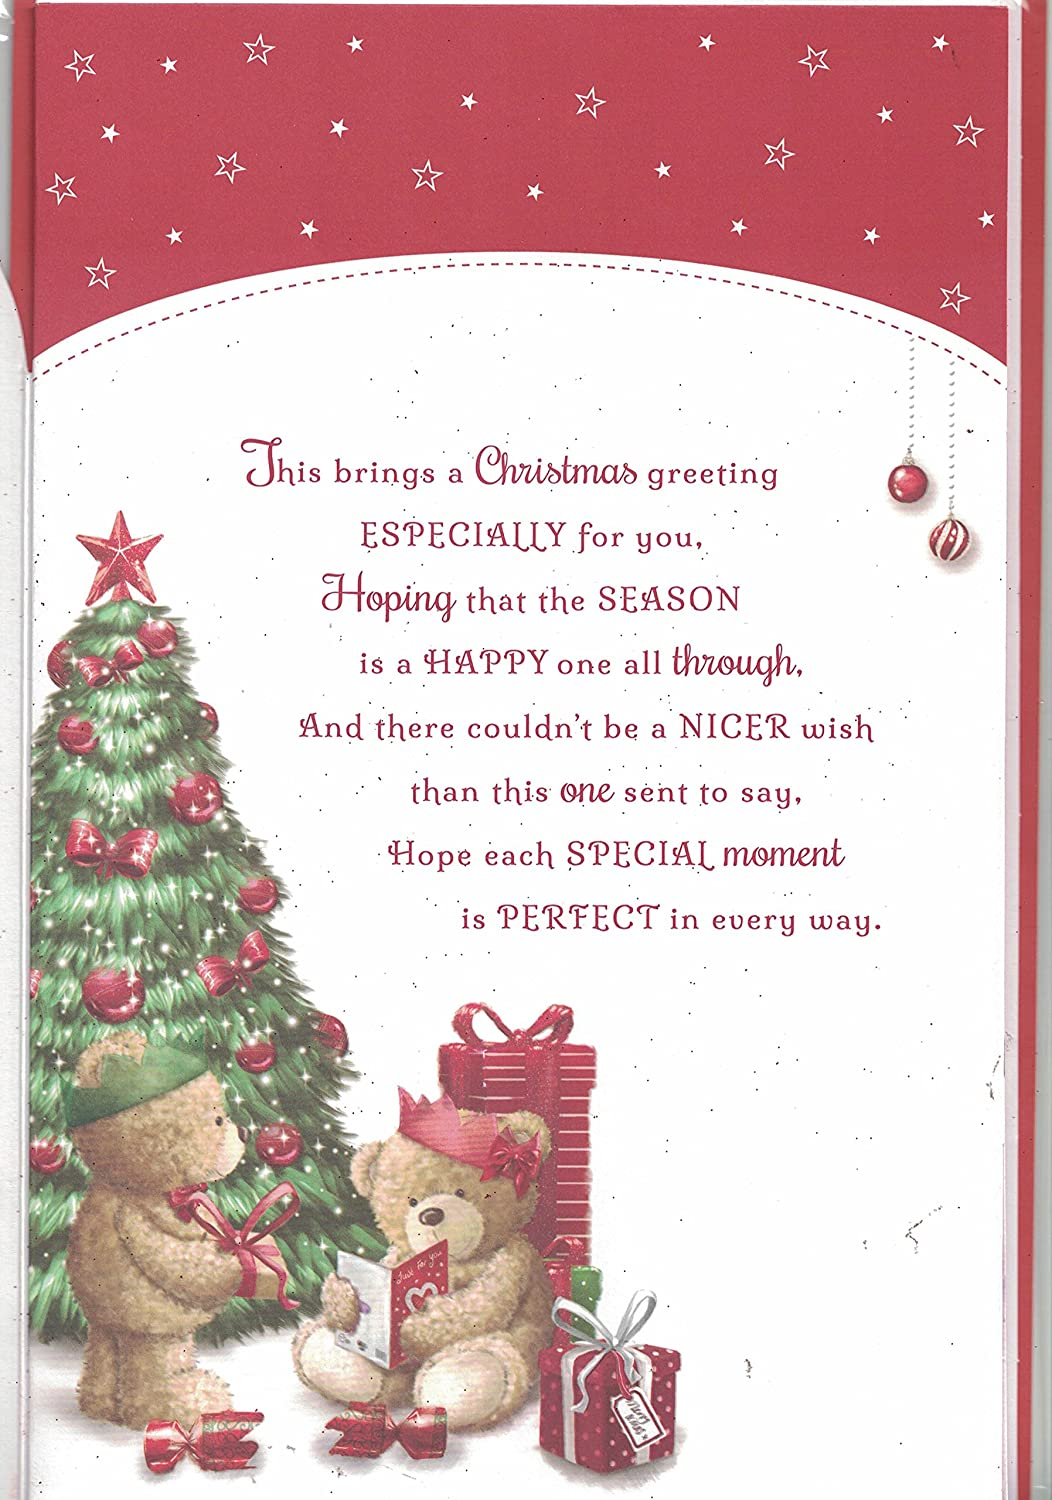 Wife christmas card to my very special wife merry christmas wife christmas card to my very special wife merry christmas santa bear christmas tree extra large 8 page card amazon toys games kristyandbryce Images